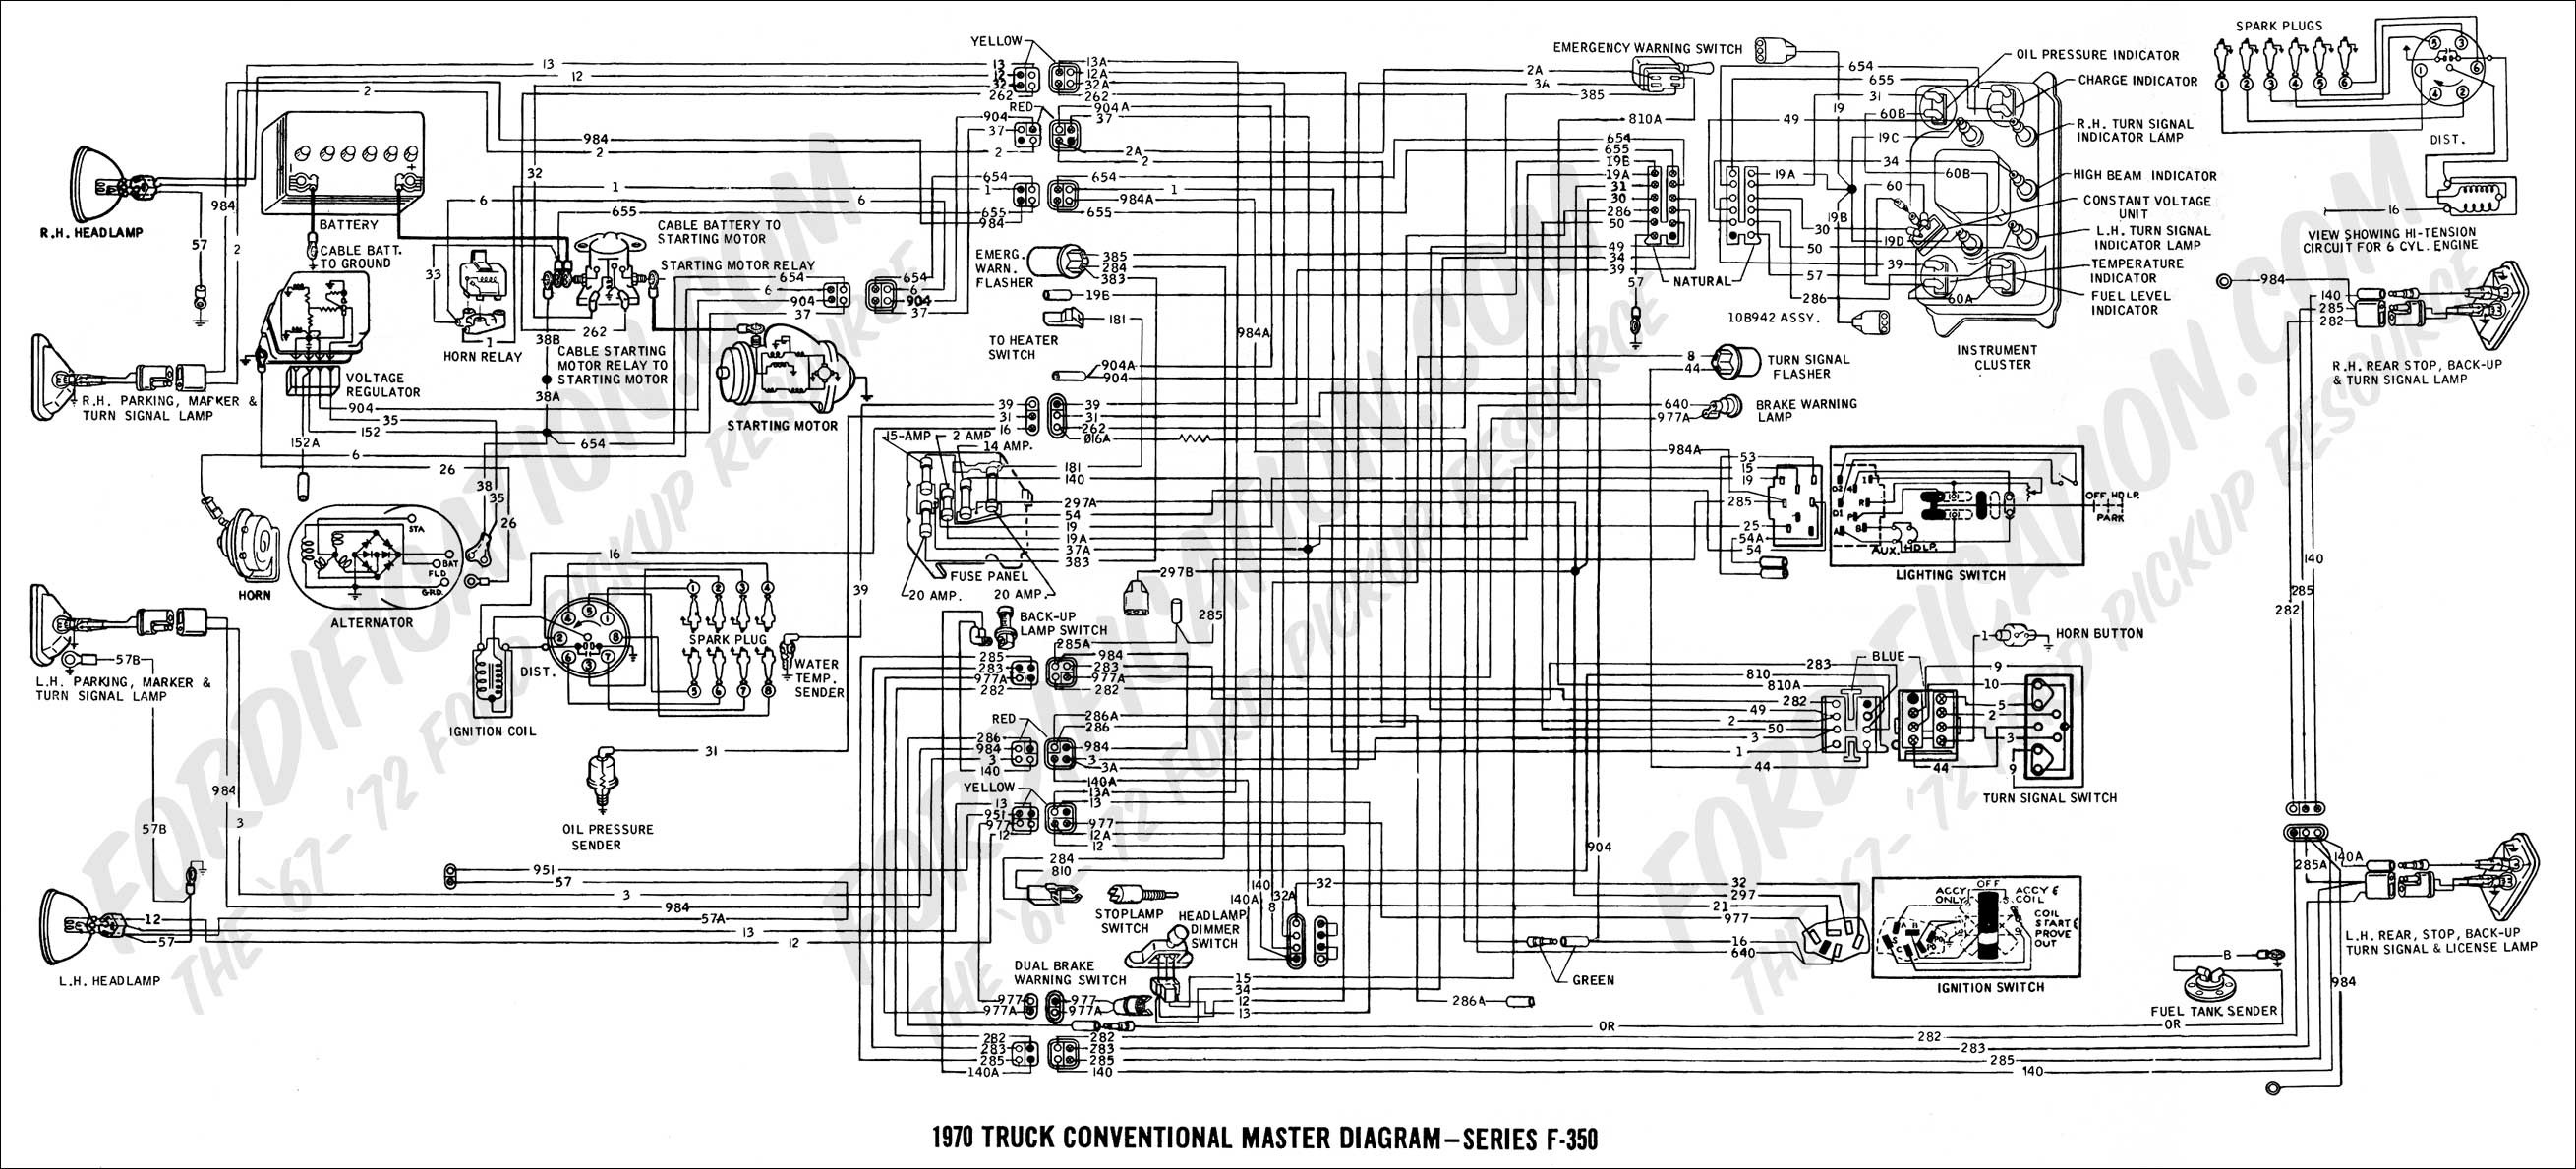 Kit Car Wiring Diagram Diagram as Well ford F 350 Wiring Diagram In Addition ford Headlight Of Kit Car Wiring Diagram